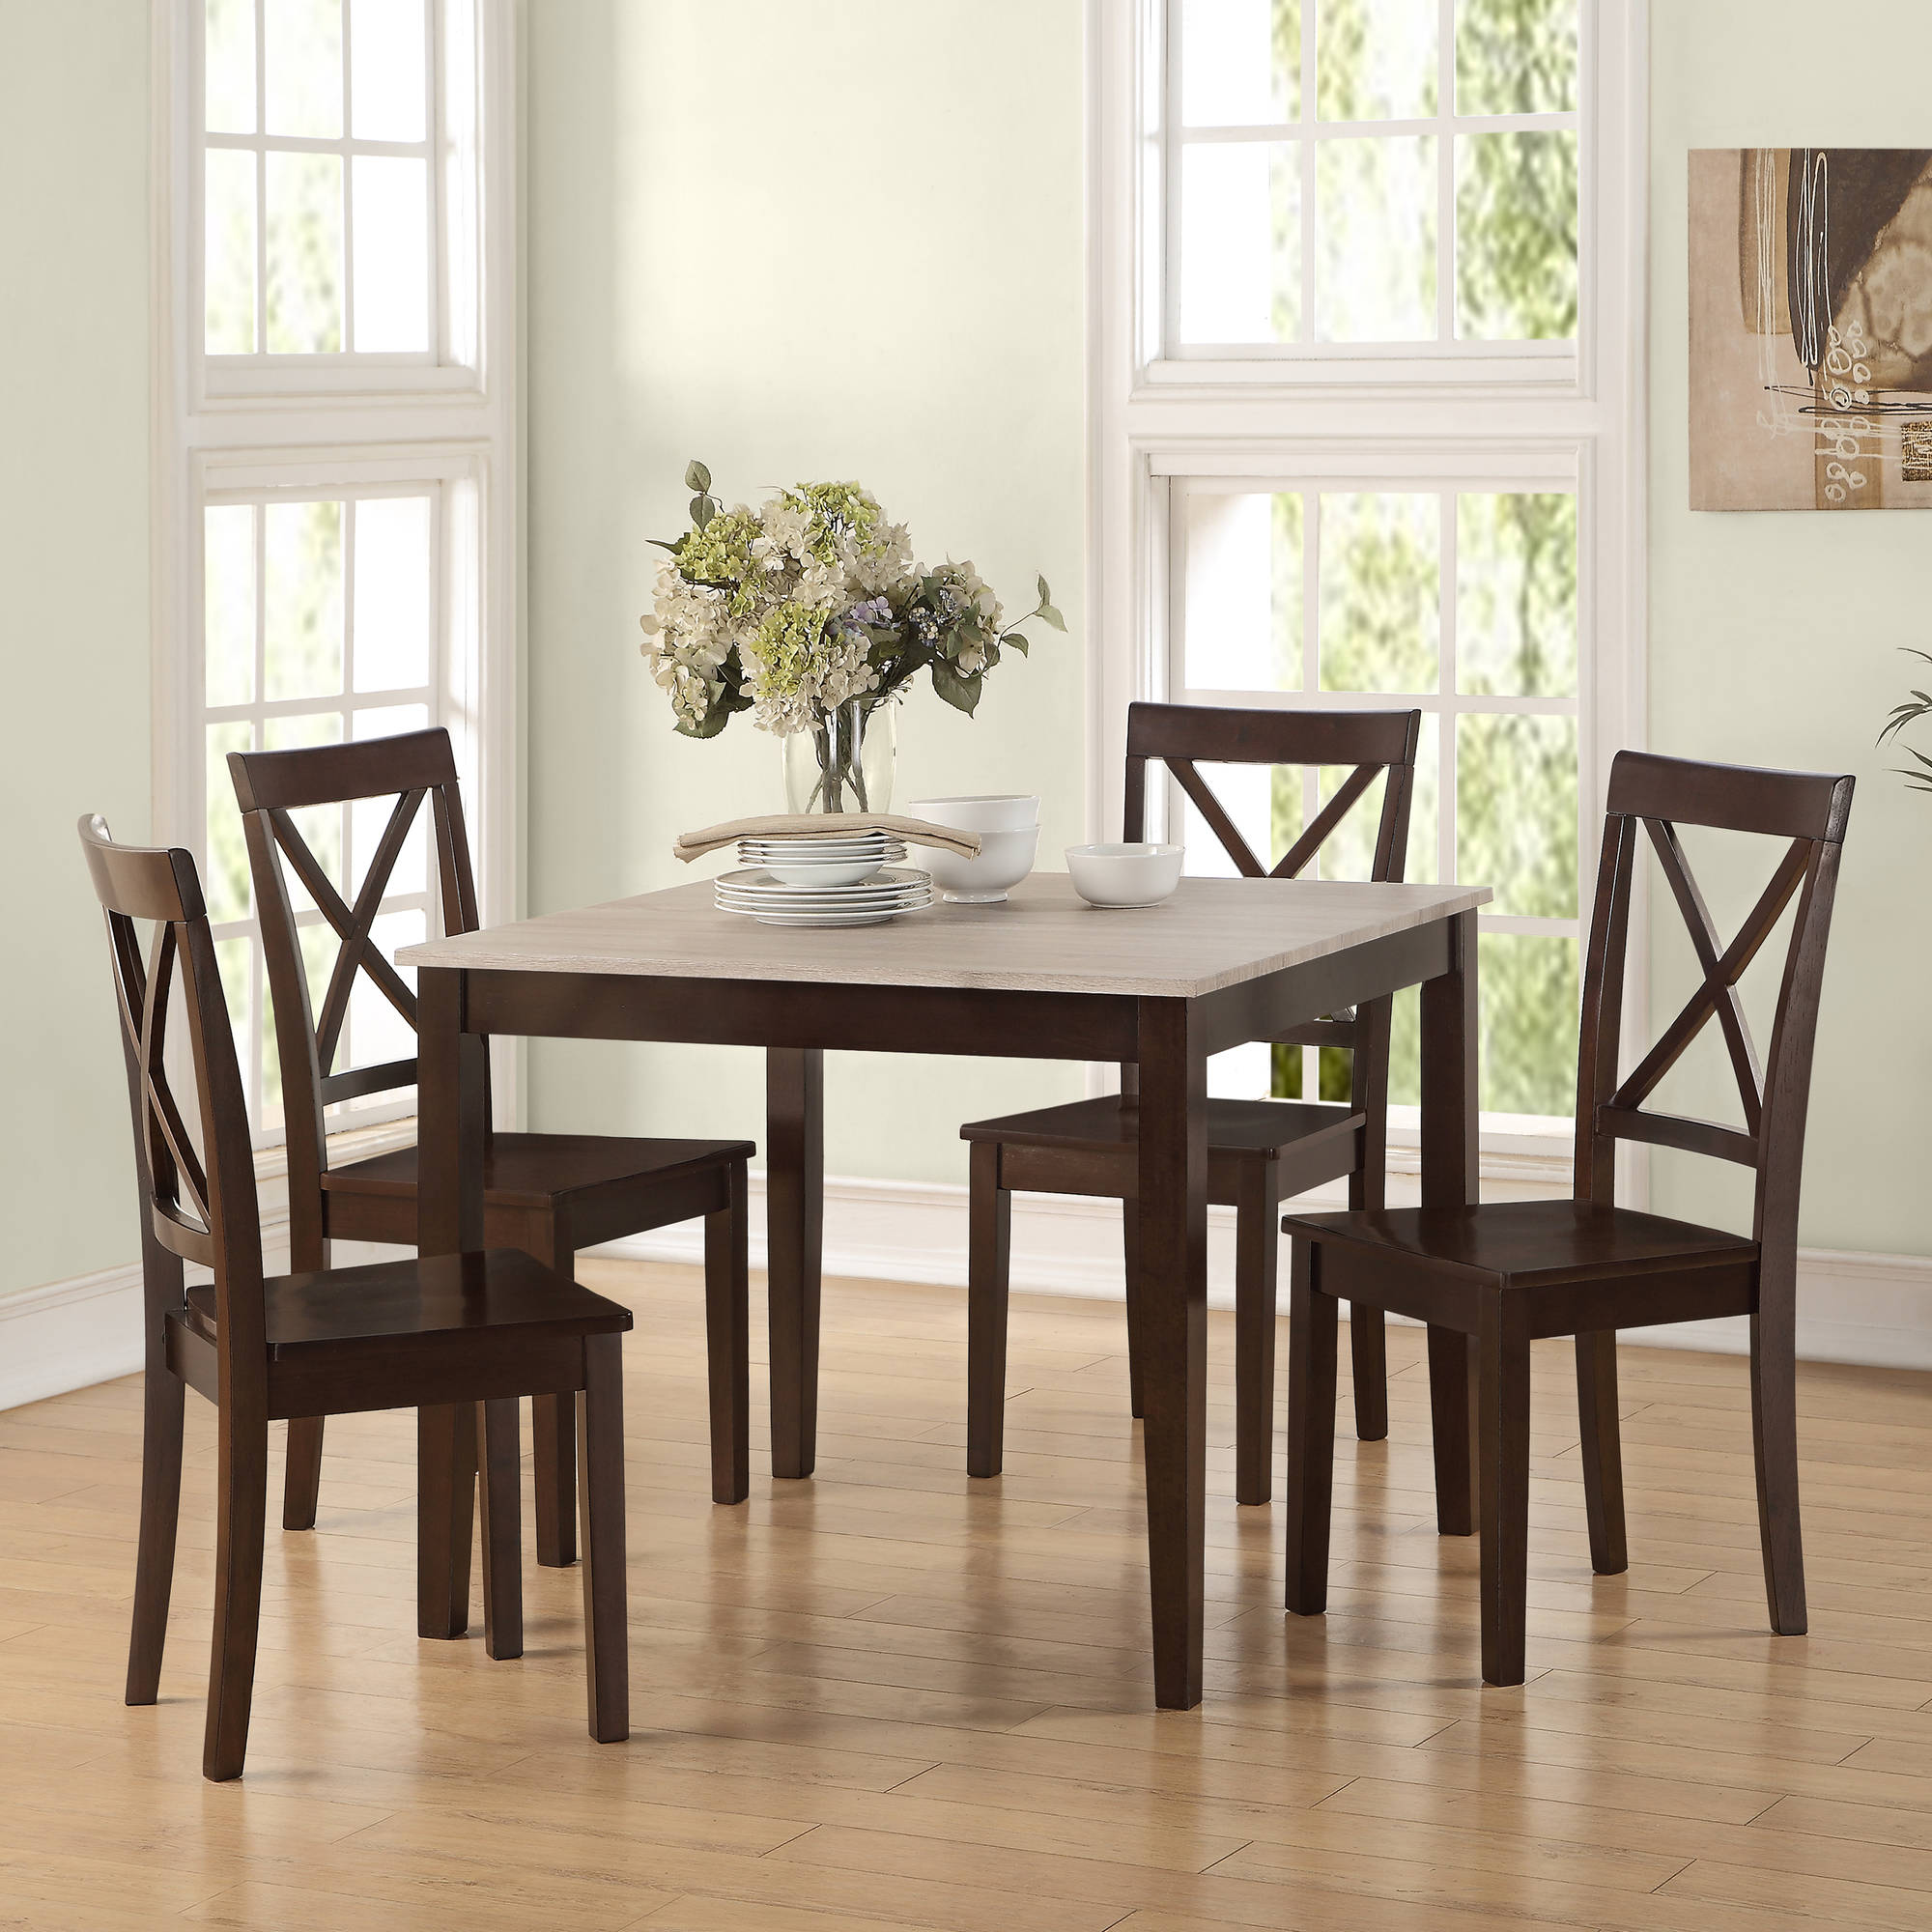 Powell turino 6 piece rectangle dining room set in grey for Dining room sets walmart